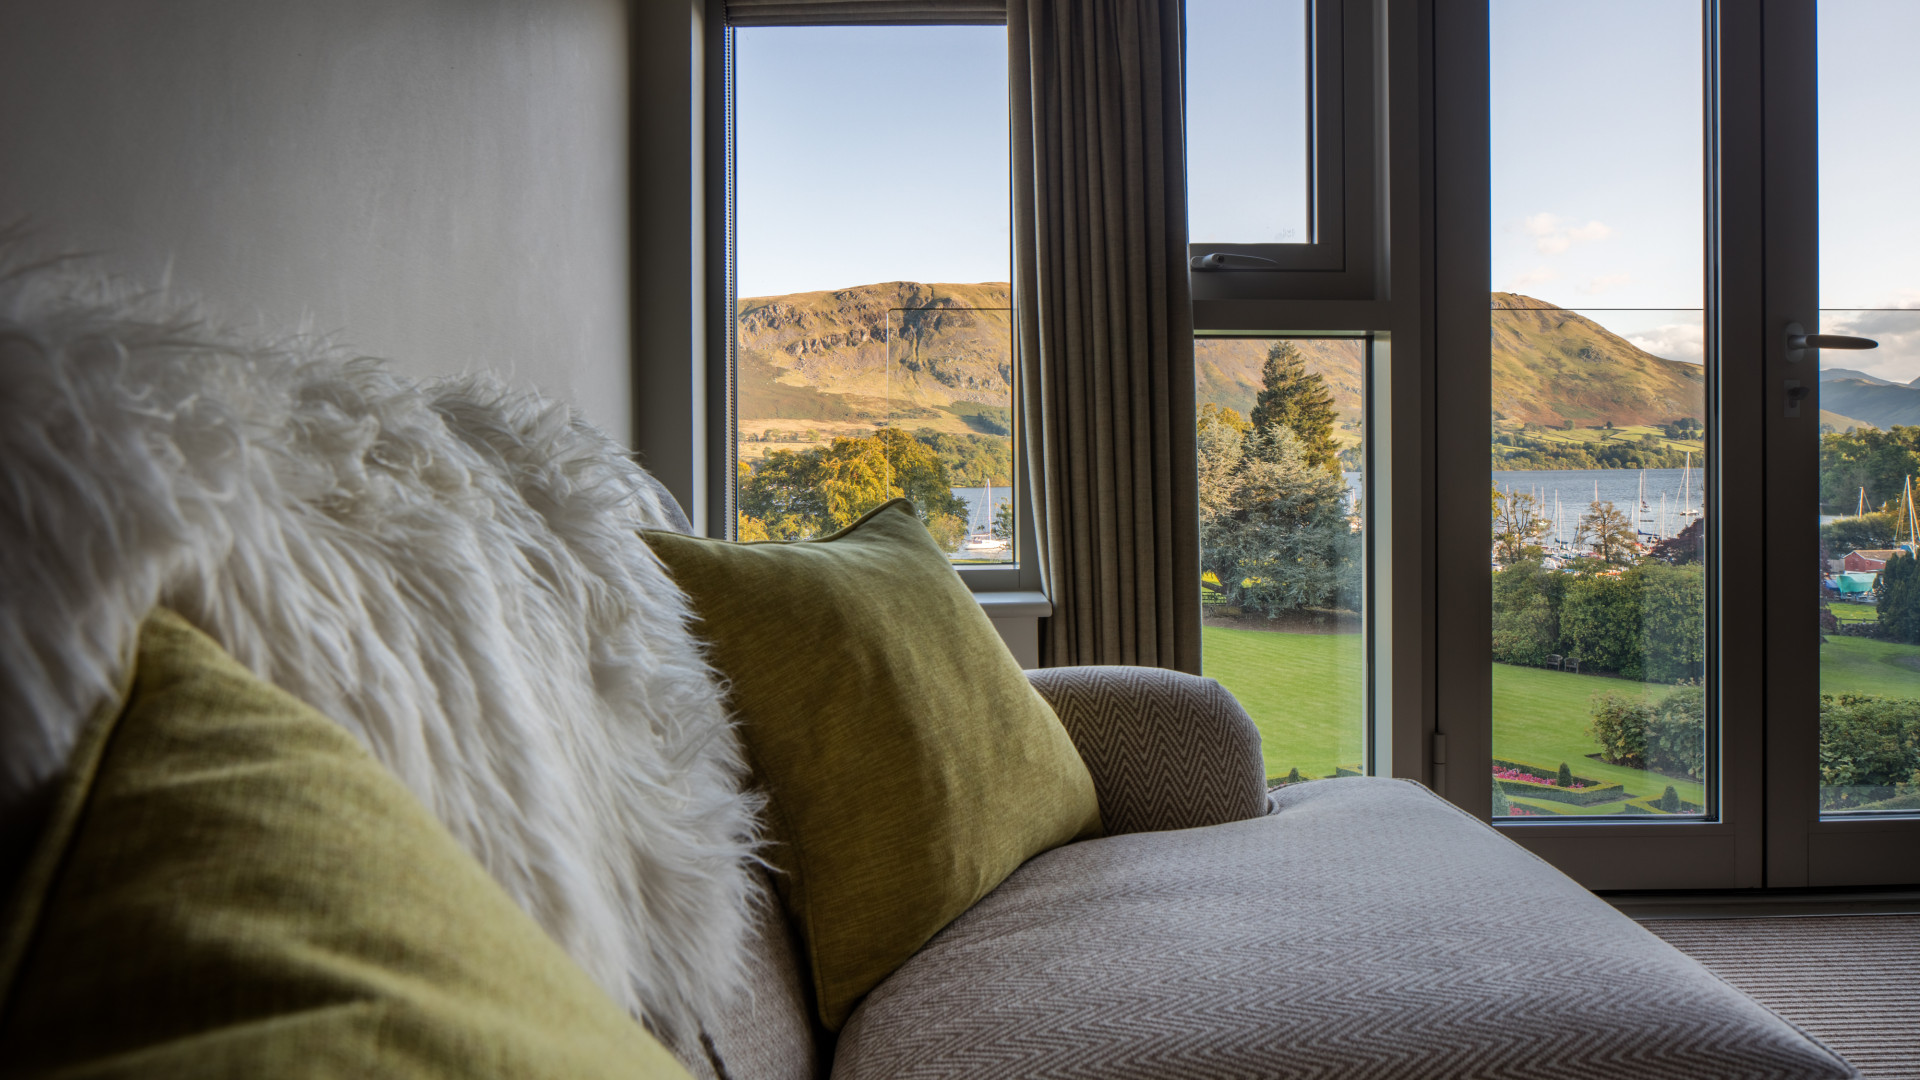 Room interior with fell view at Another Place – The Lake, Ullswater, Lake District